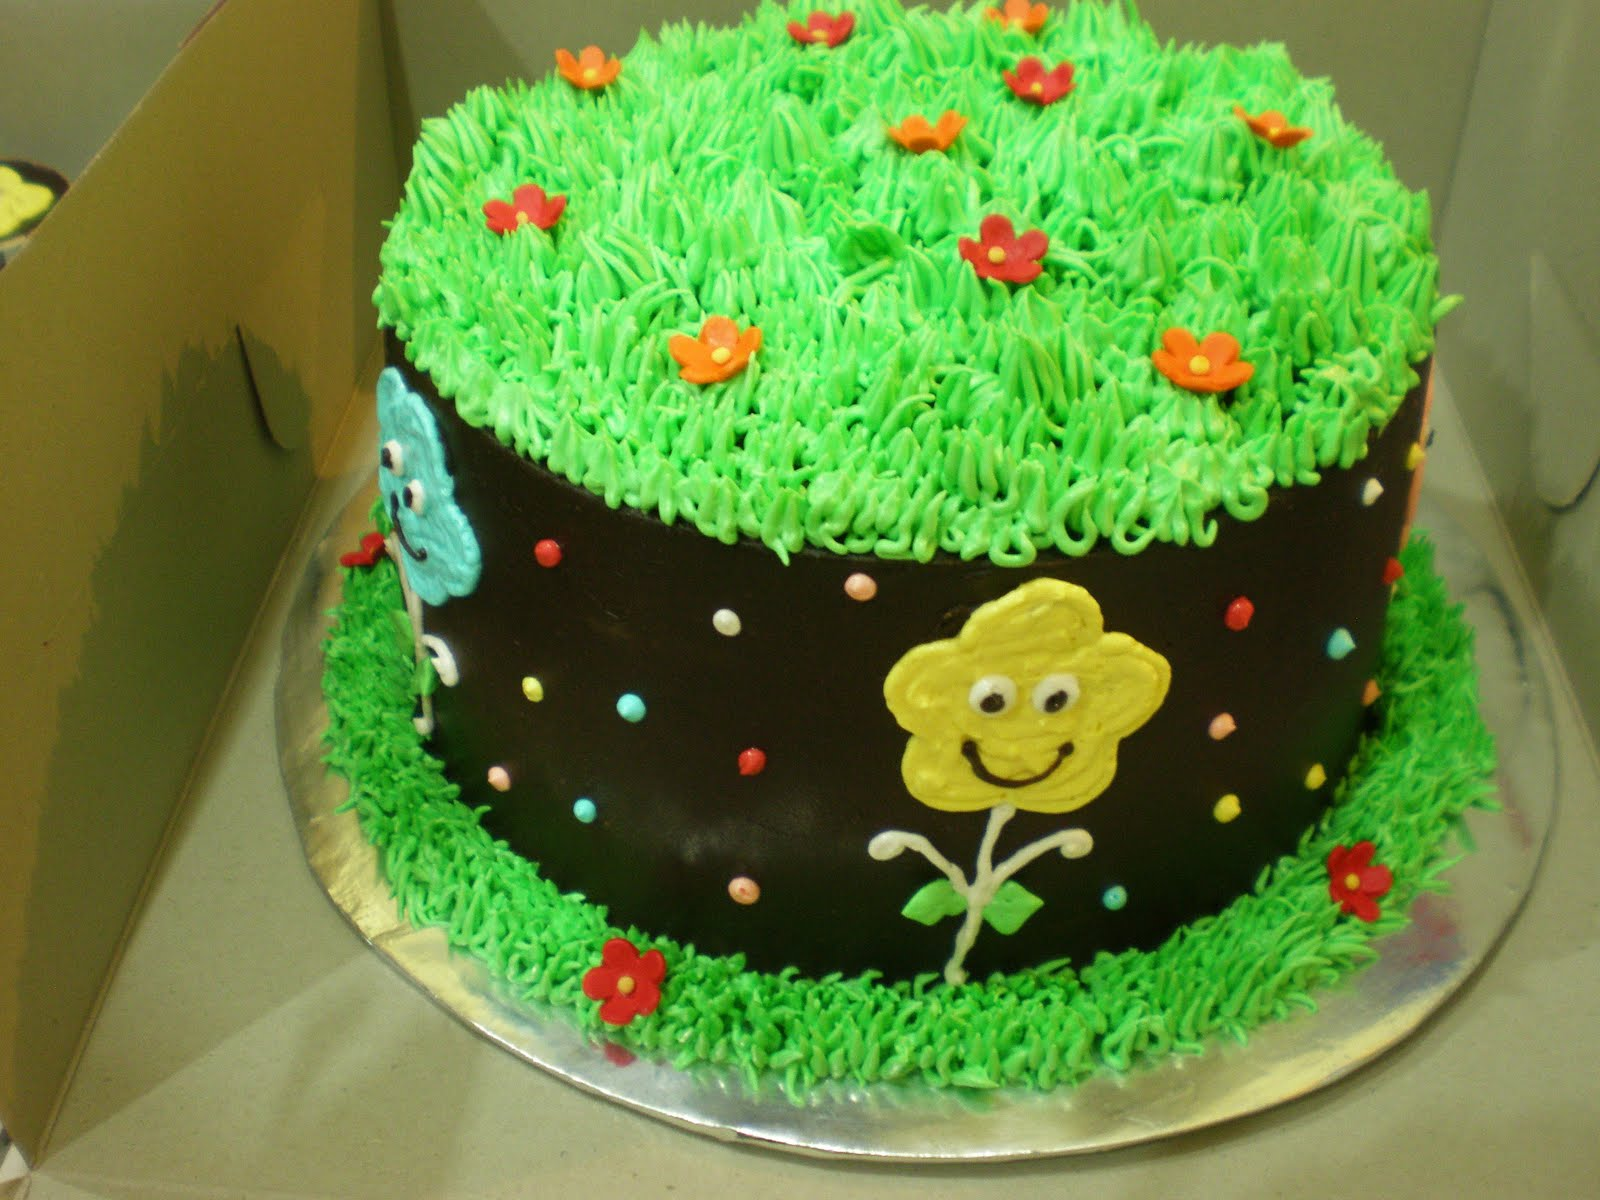 images of cakes with garden theme - photo #13